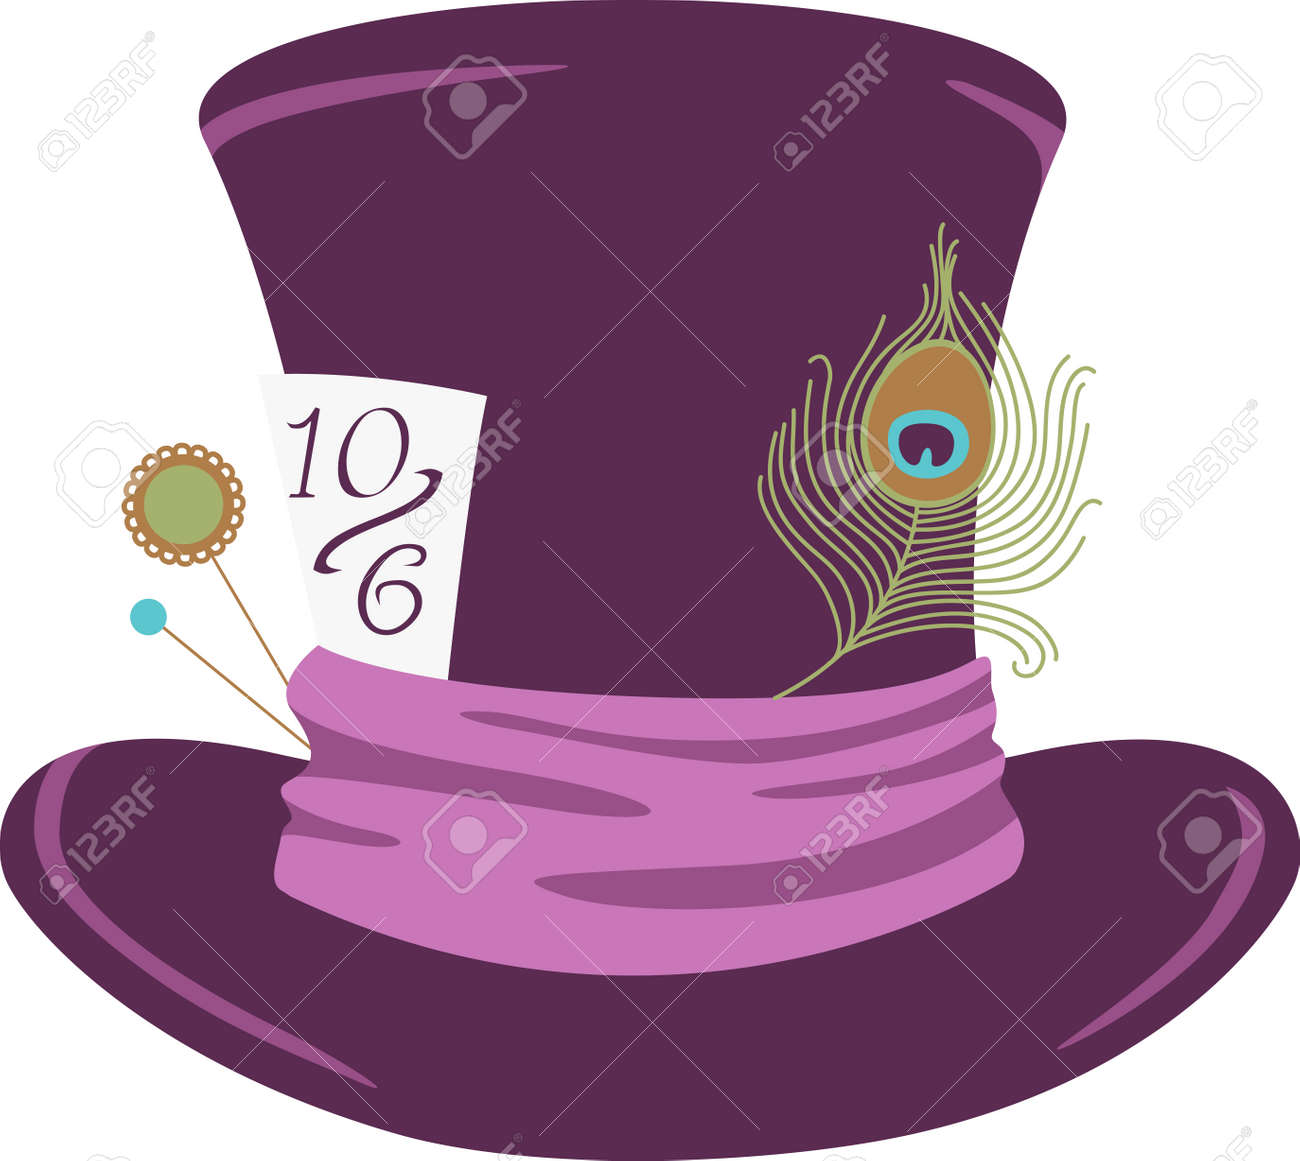 Mad Hatter Stock Photos Royalty Free Mad Hatter Images